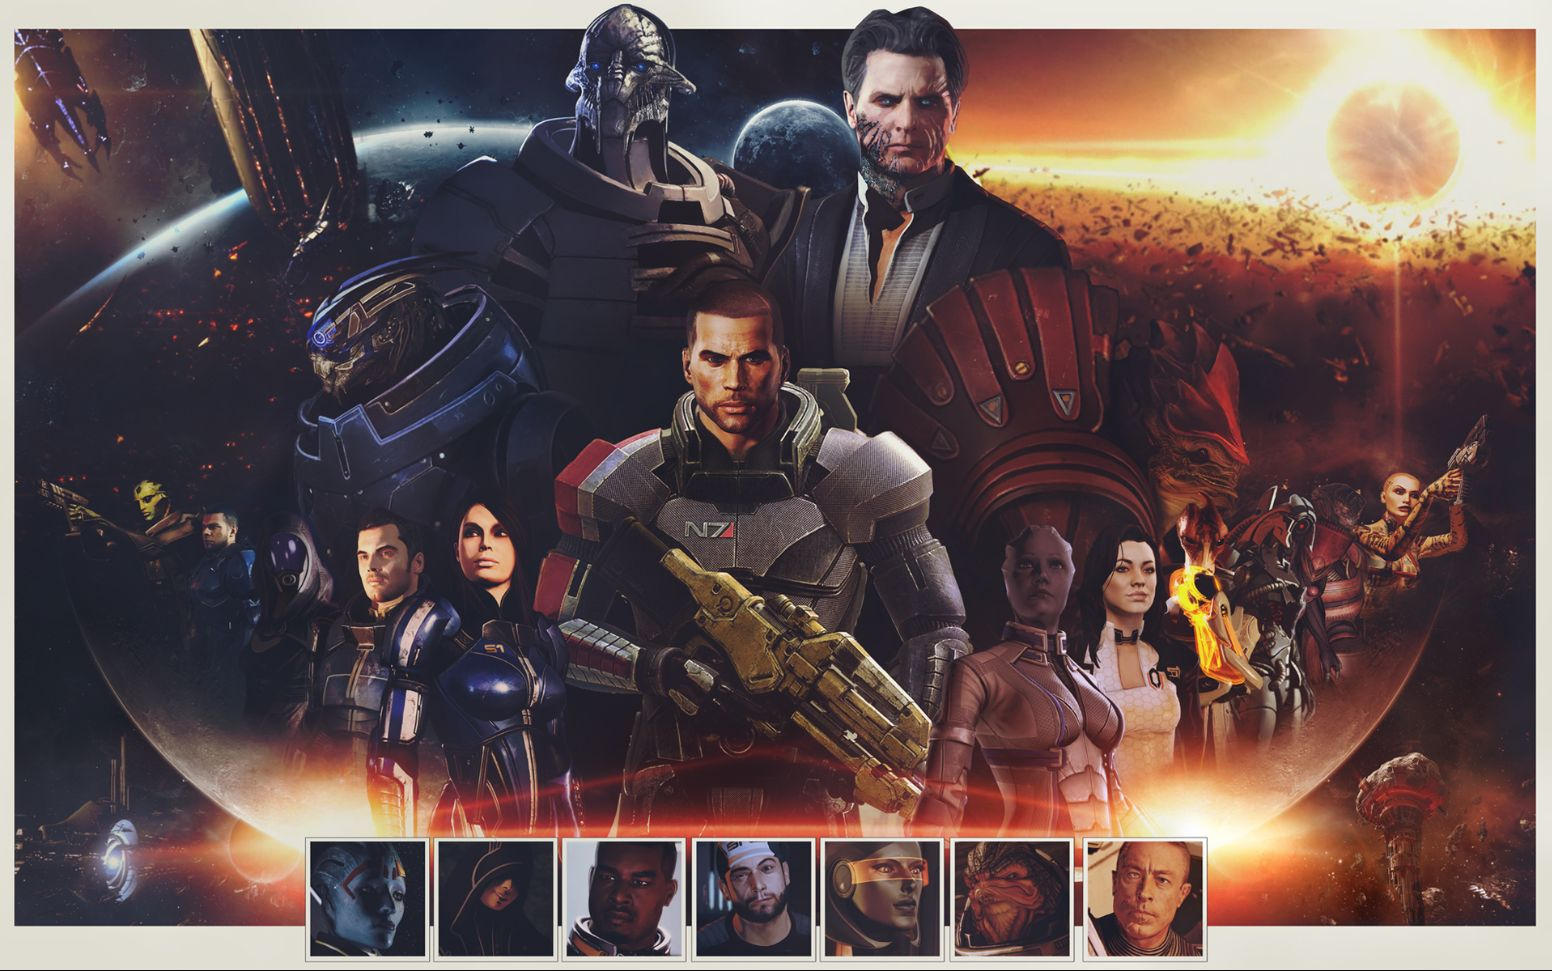 Mass Effect Trilogy – sci-fi and proud